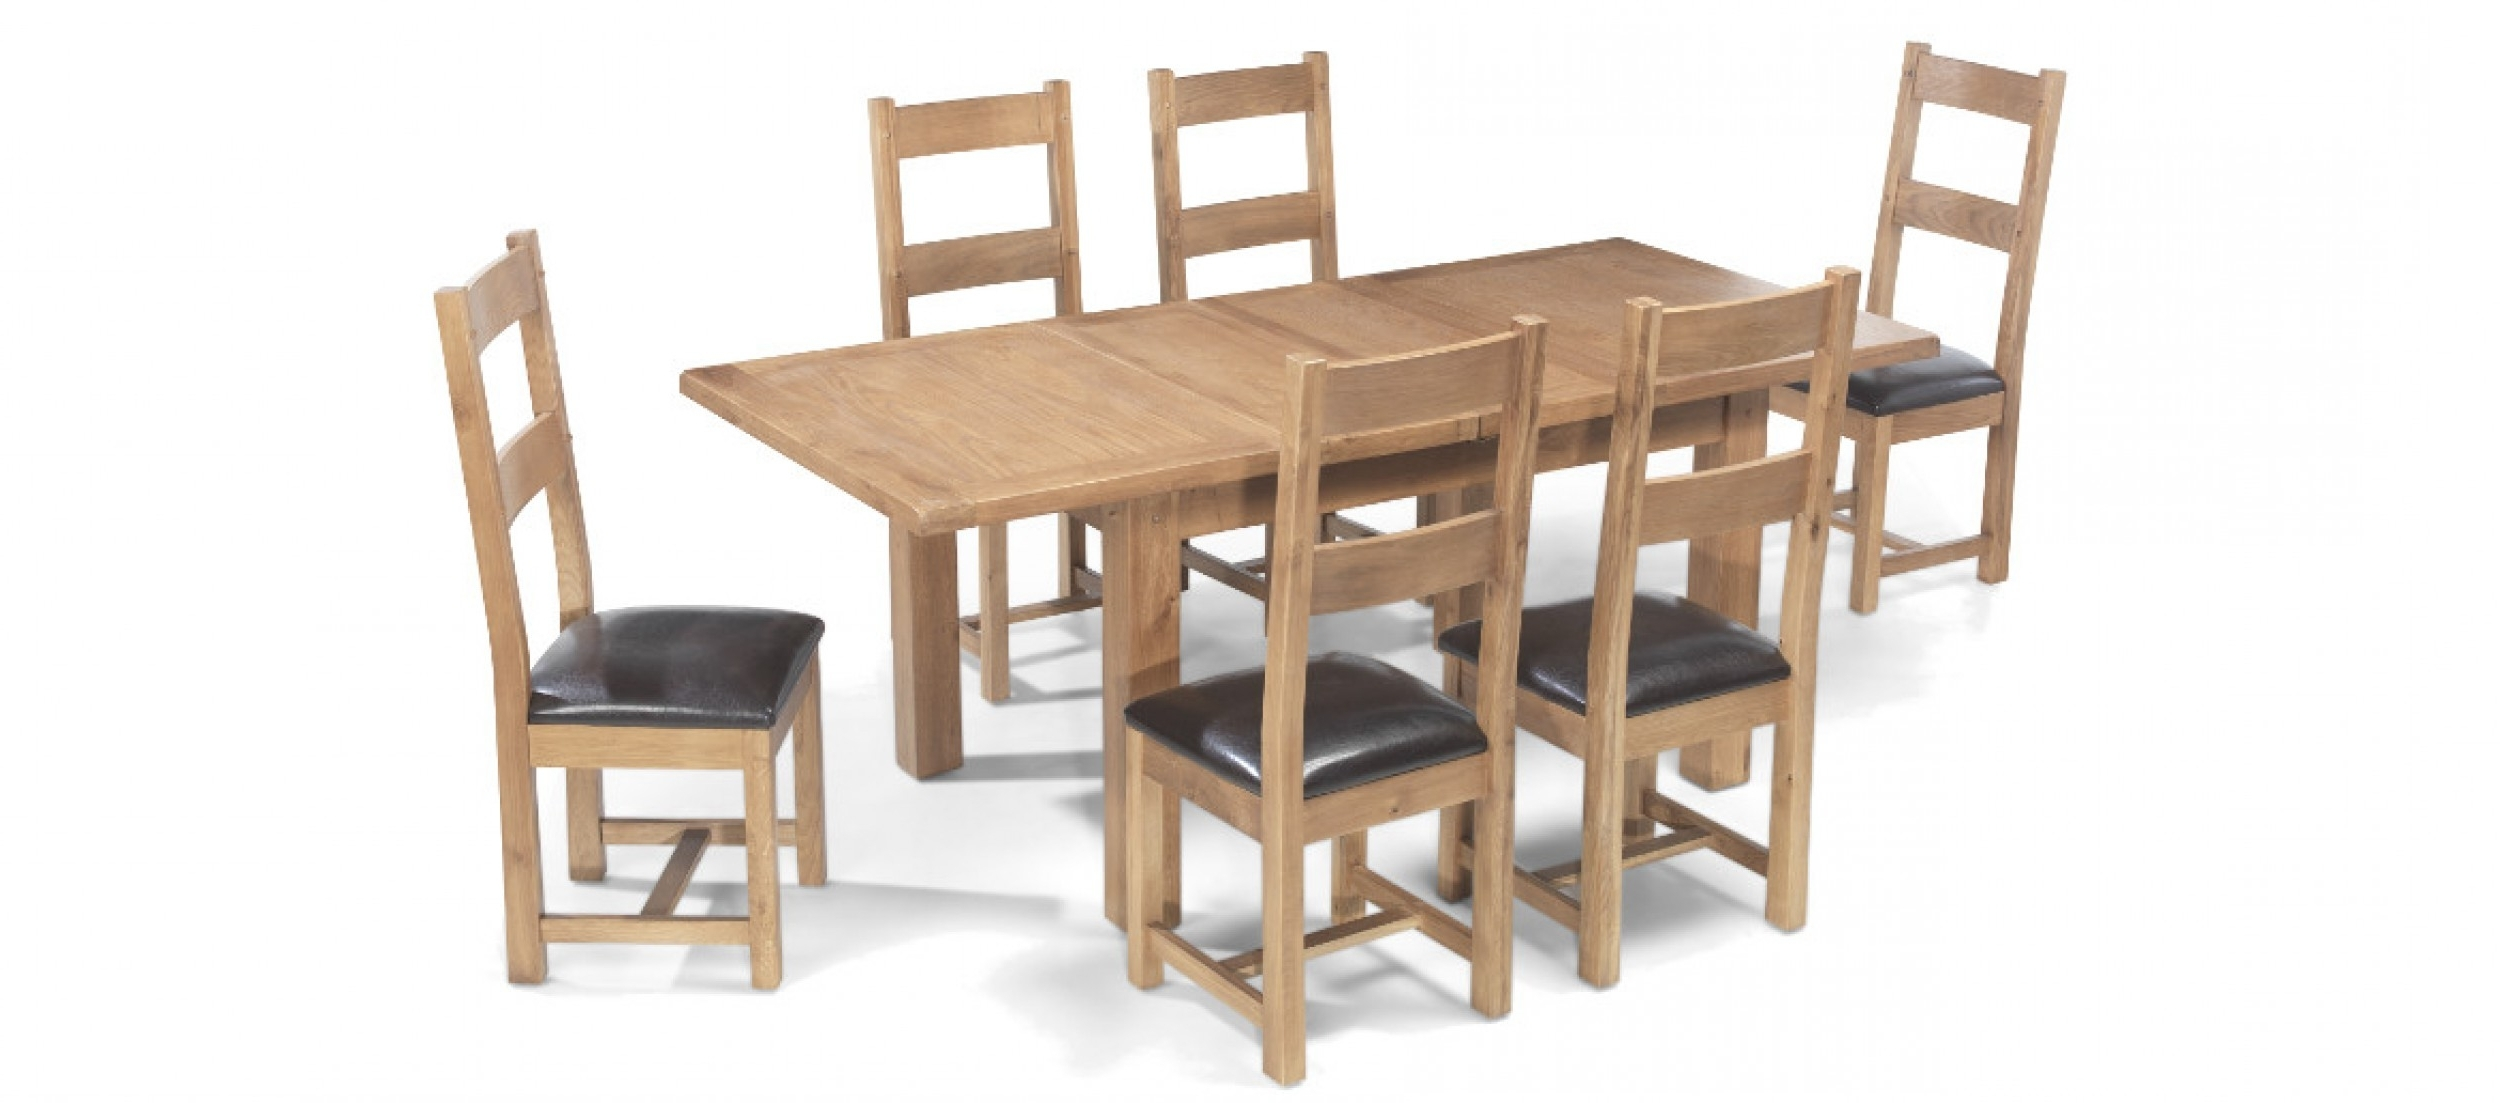 Quercus pertaining to Most Up-to-Date Chunky Solid Oak Dining Tables And 6 Chairs